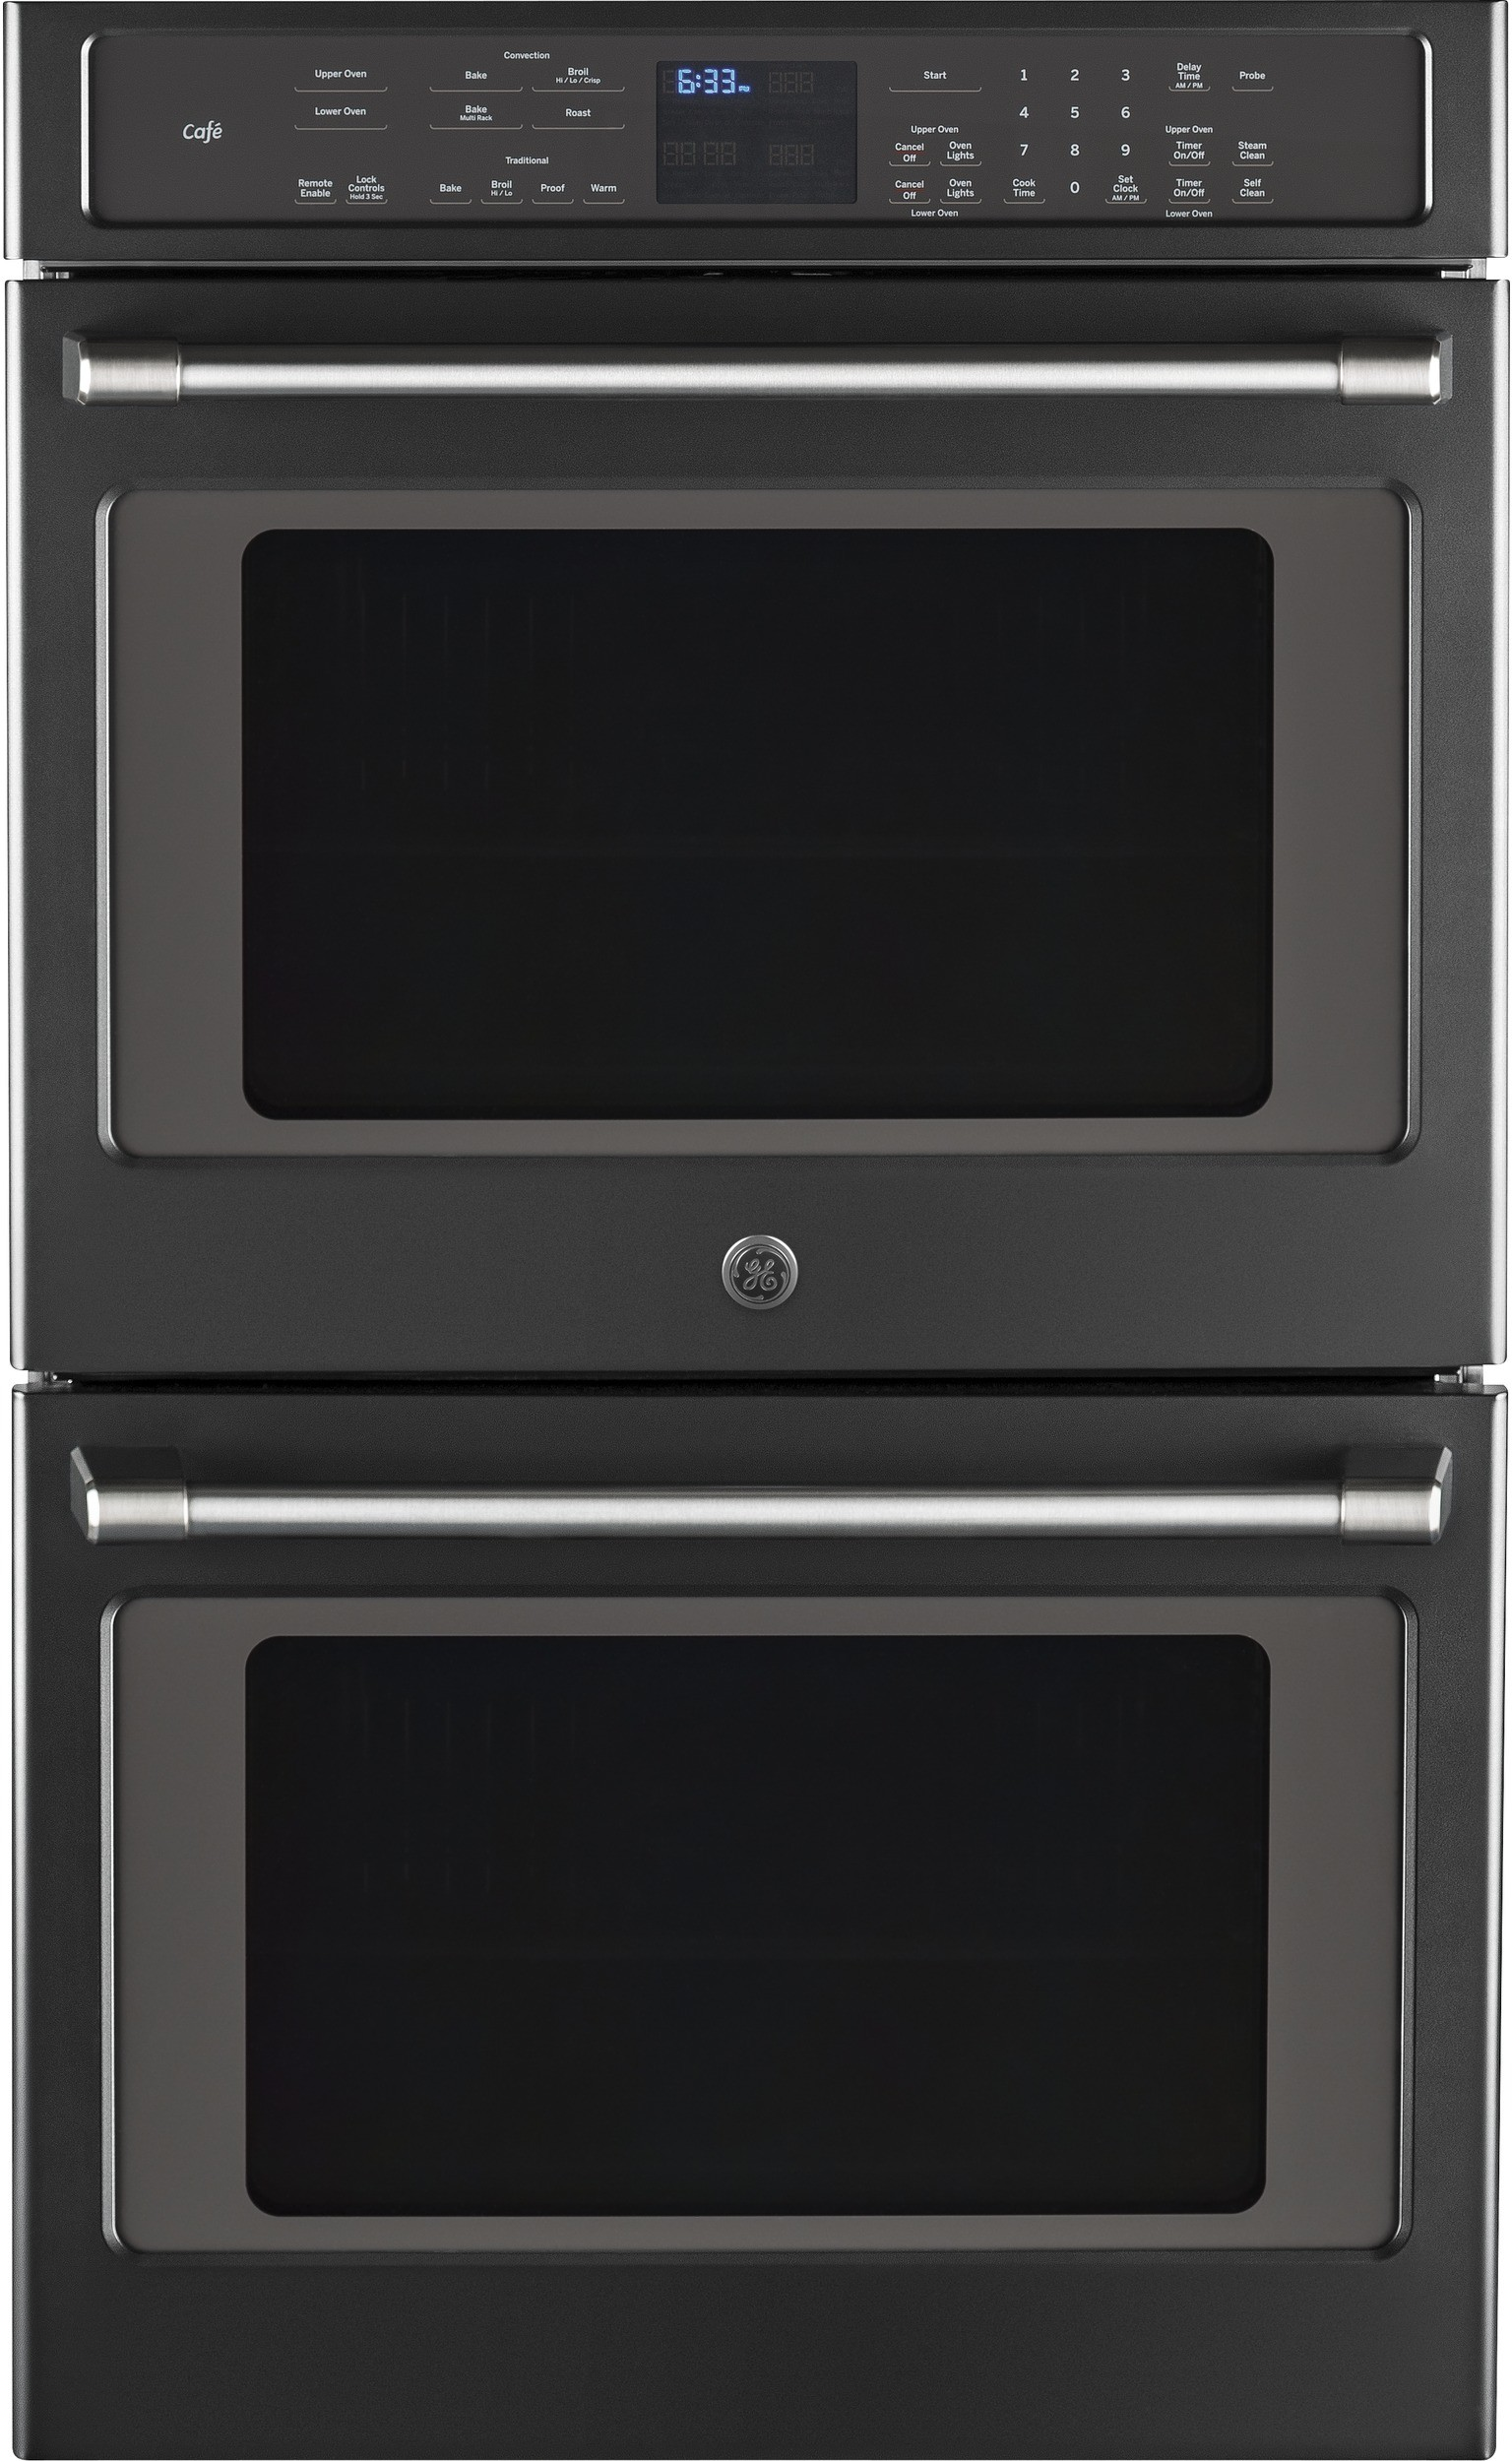 How To Clean Black Appliances Double Wall Ovens Double Ovens